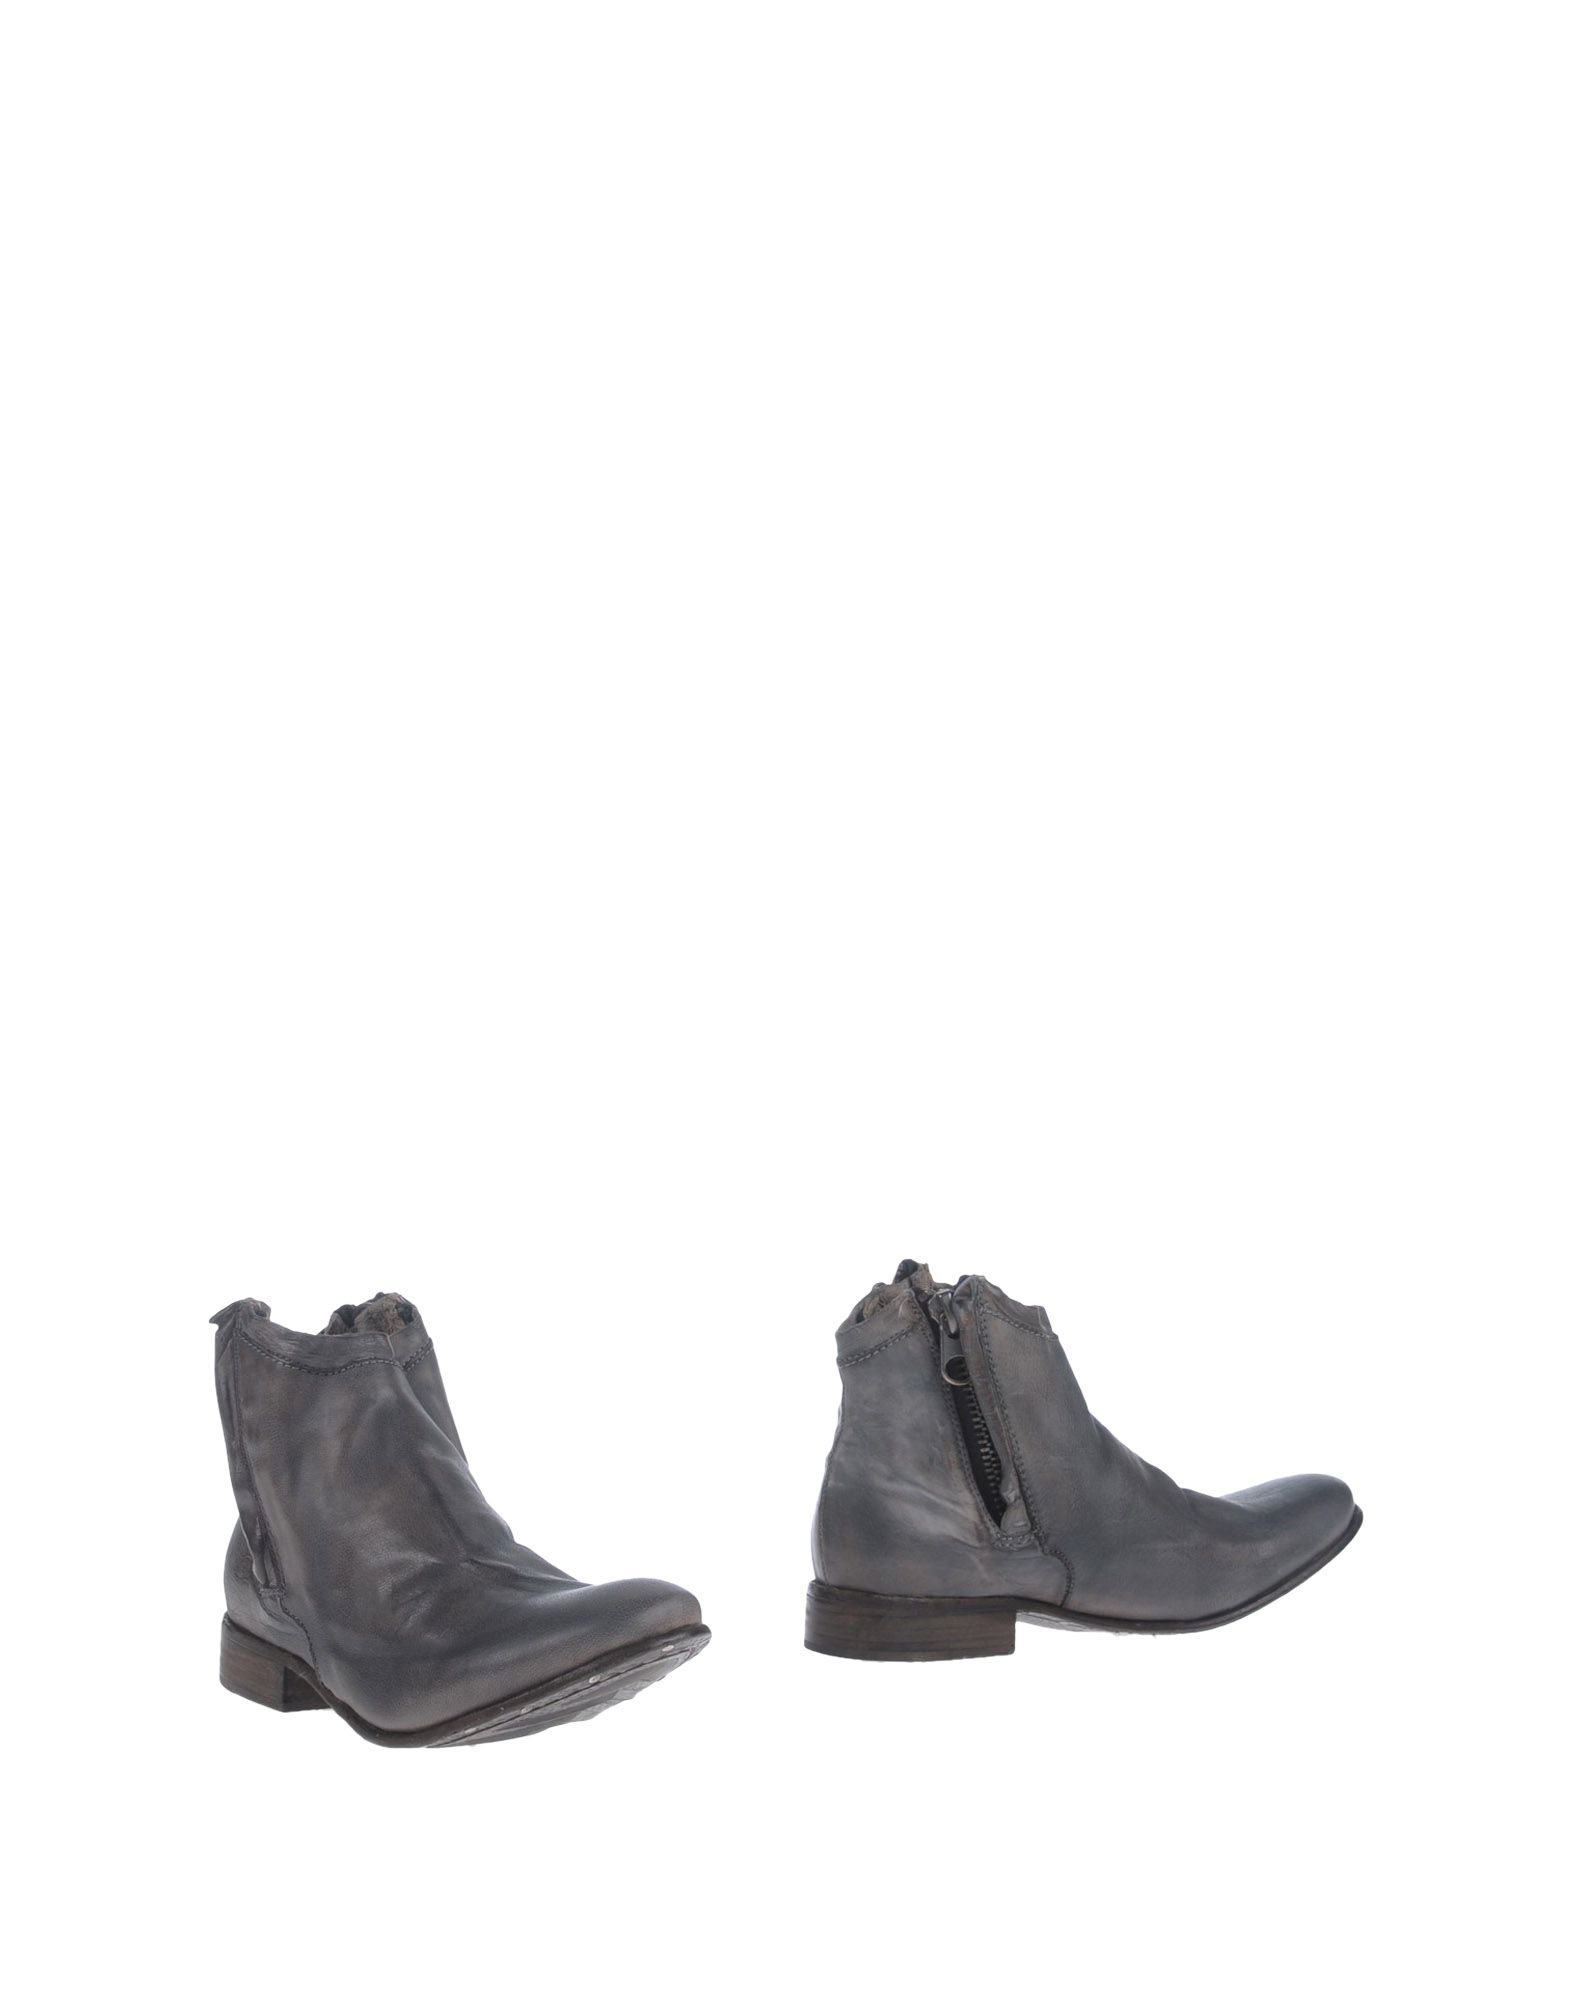 NYLO Ankle Boot in Slate Blue